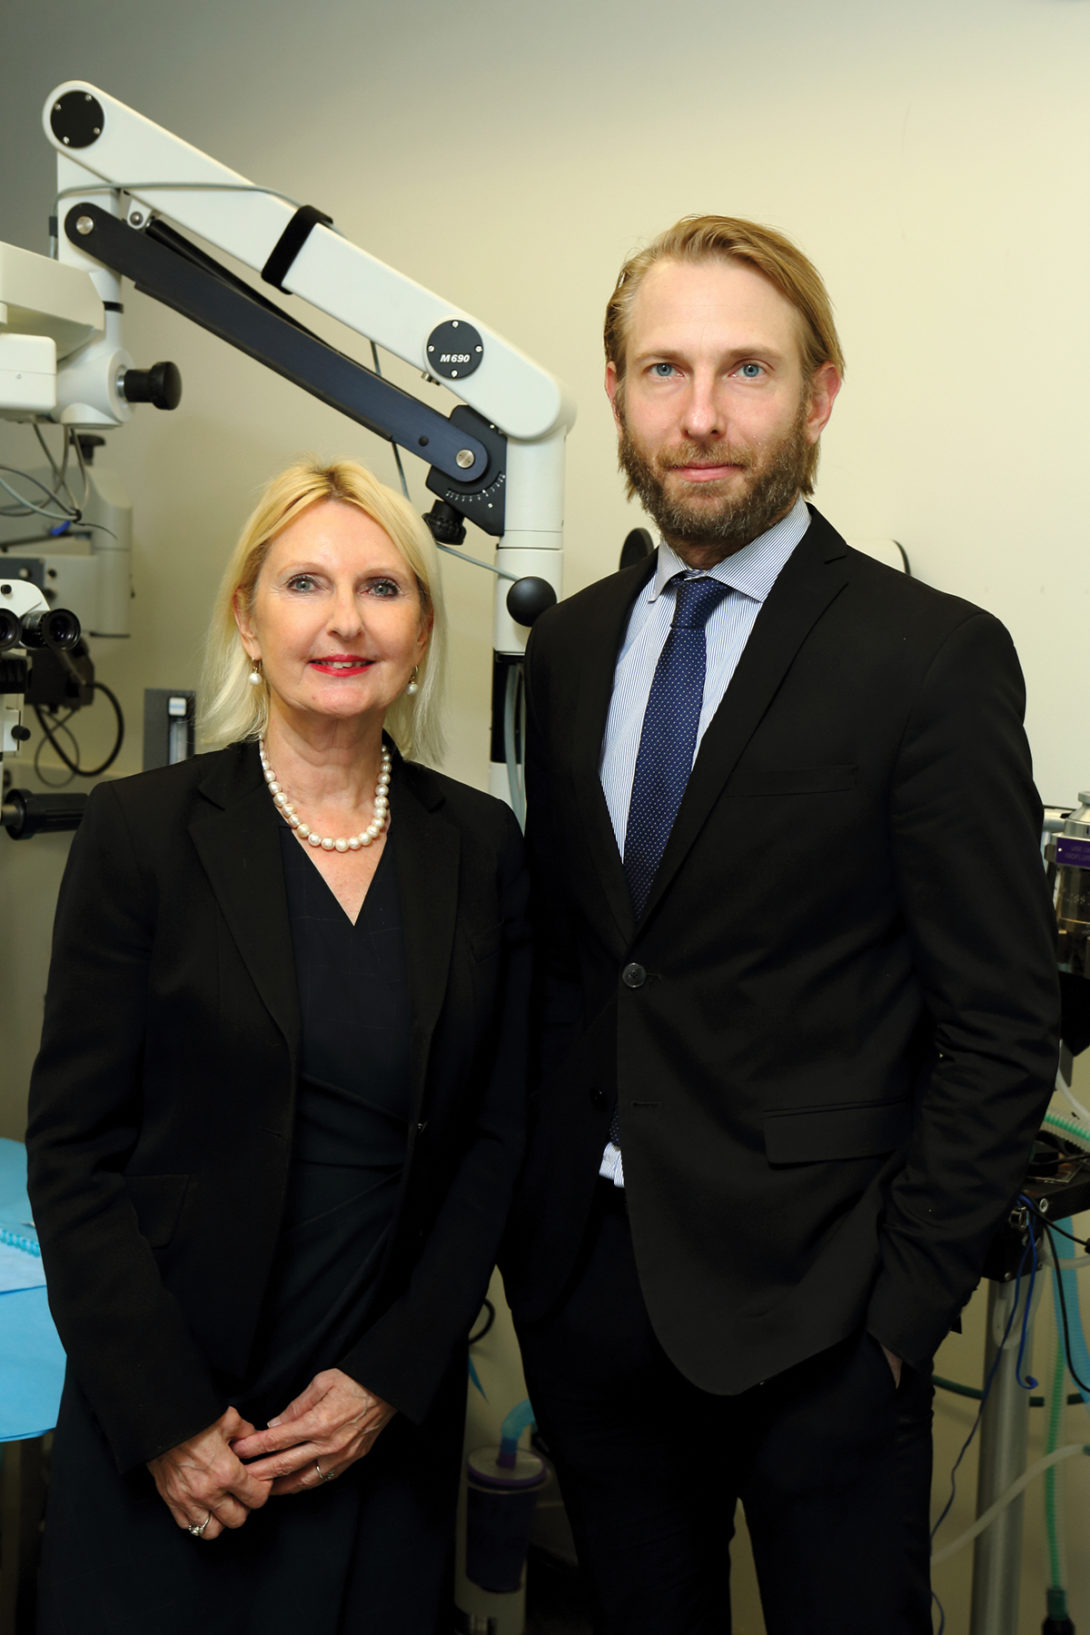 Drs. Maria and Kris Siemionow.